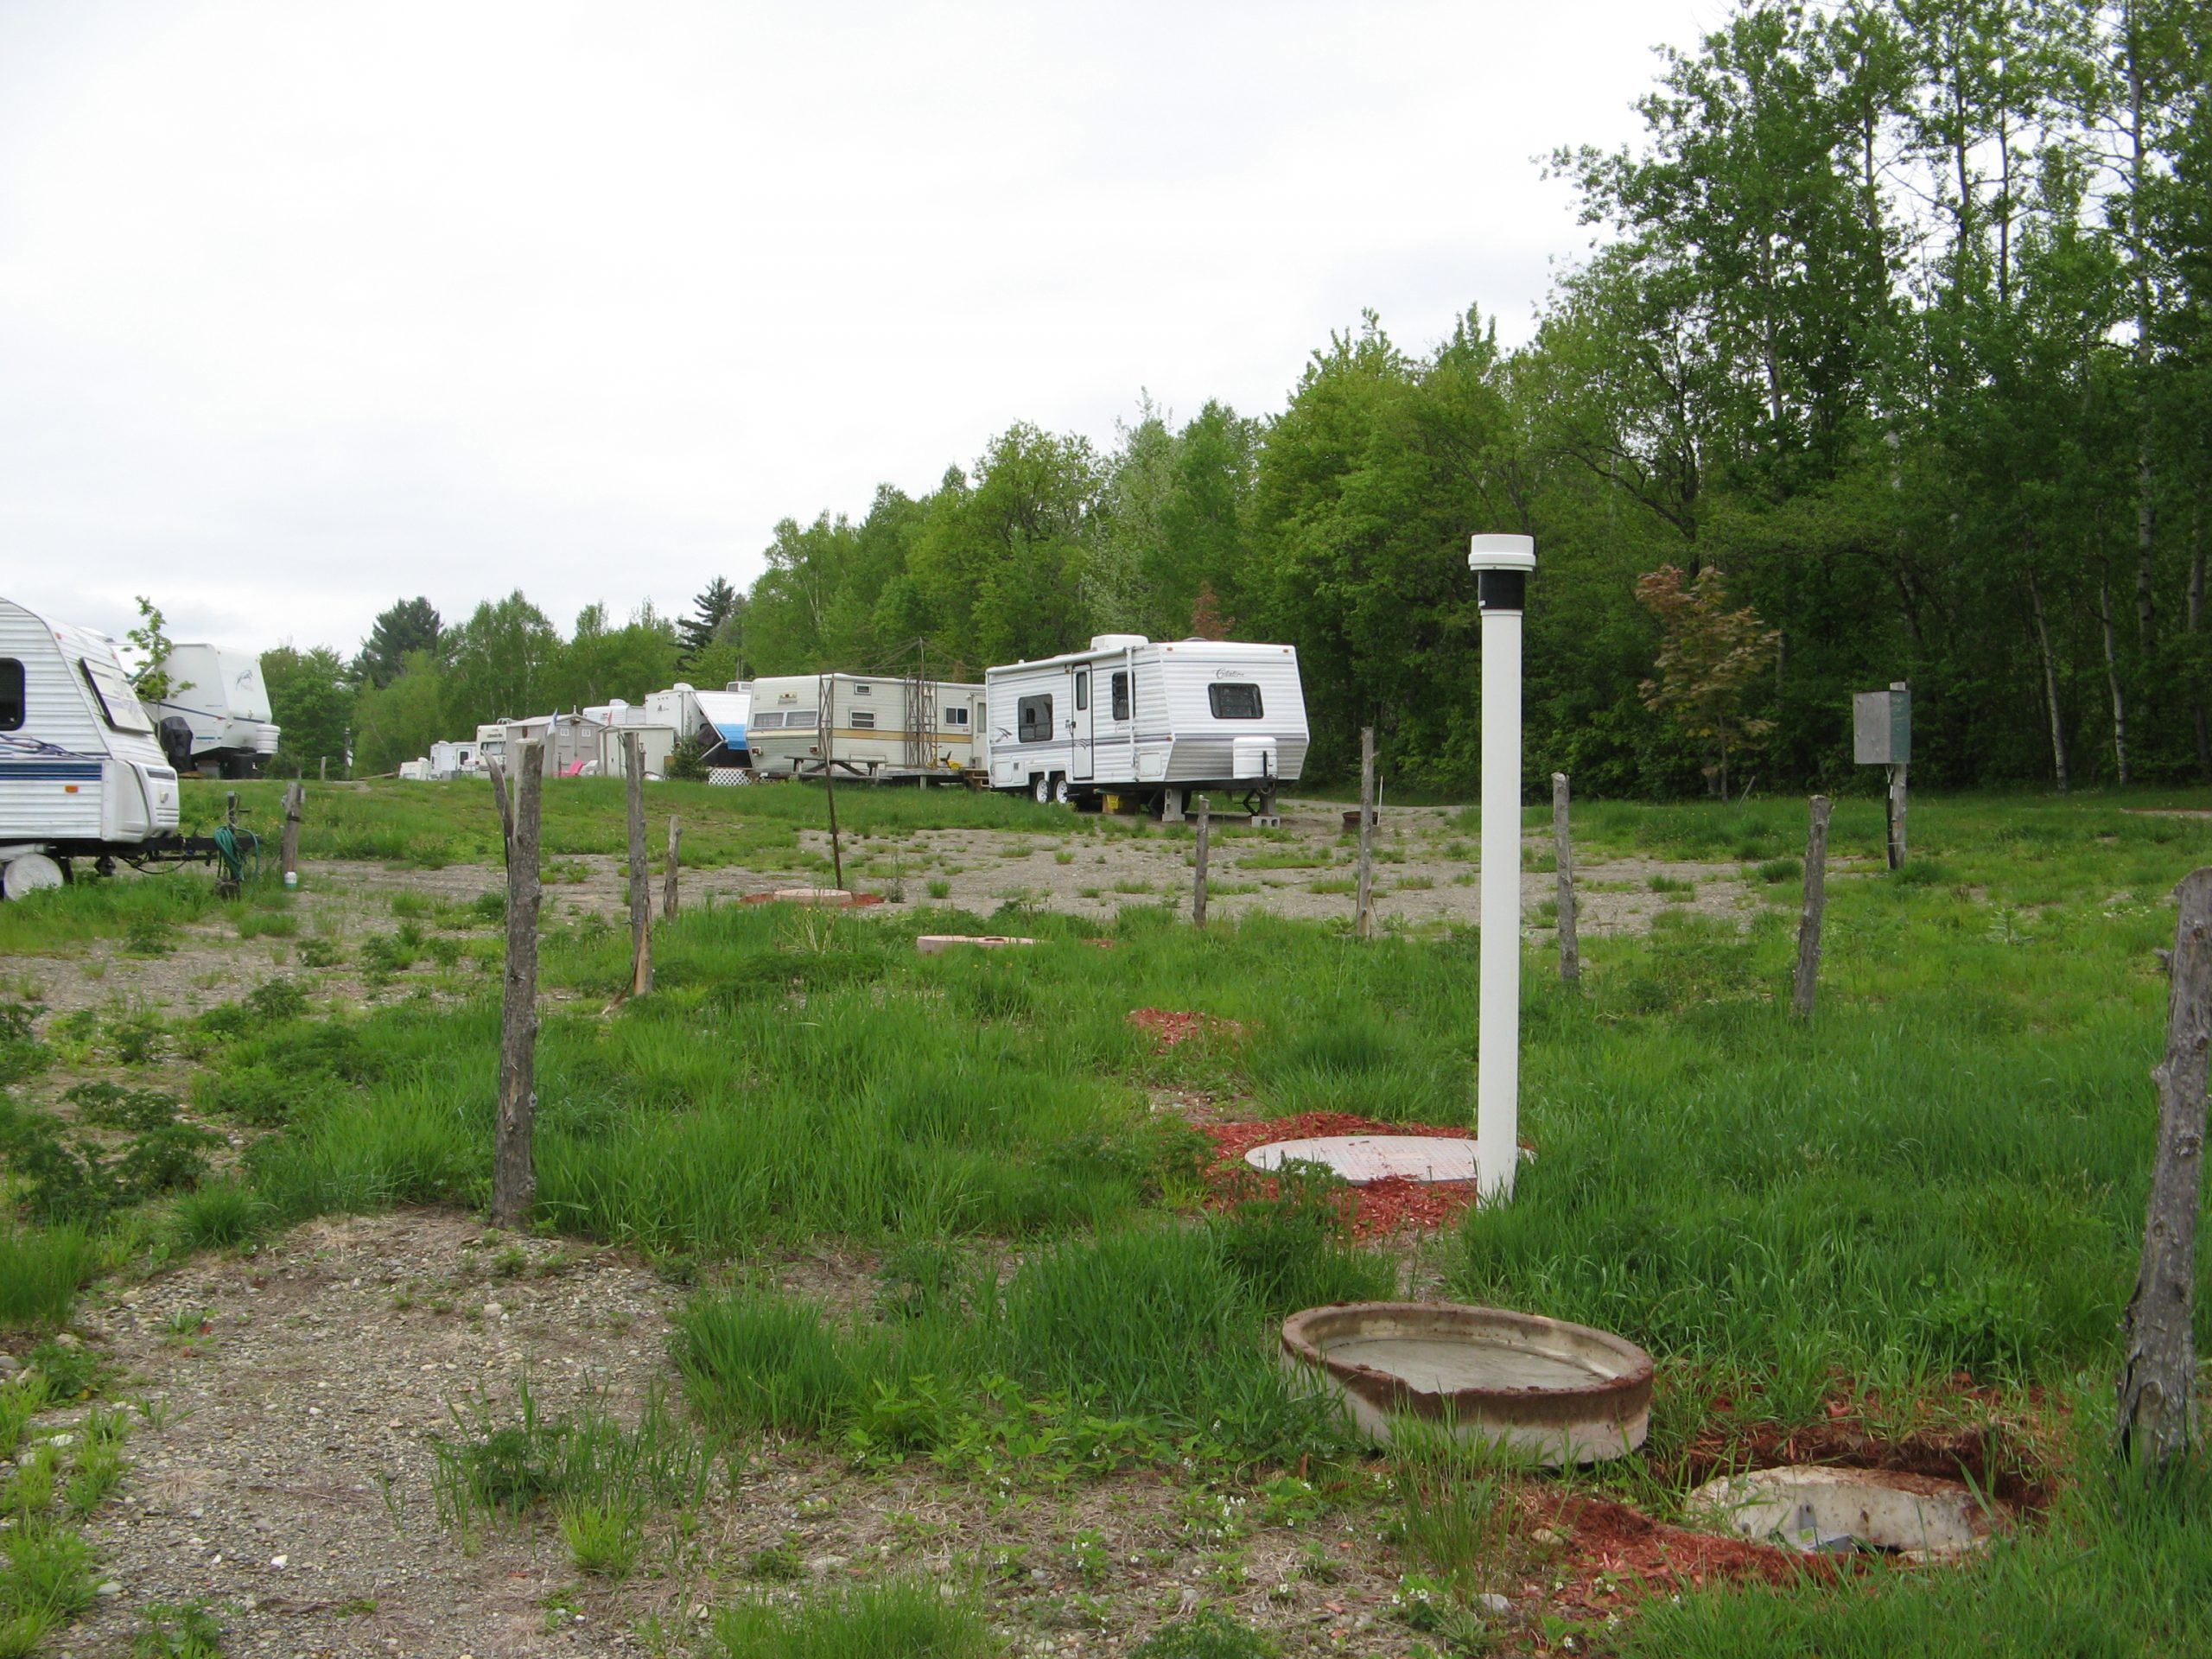 Septic system for a lakeside campground in Quebec - Case Study 1